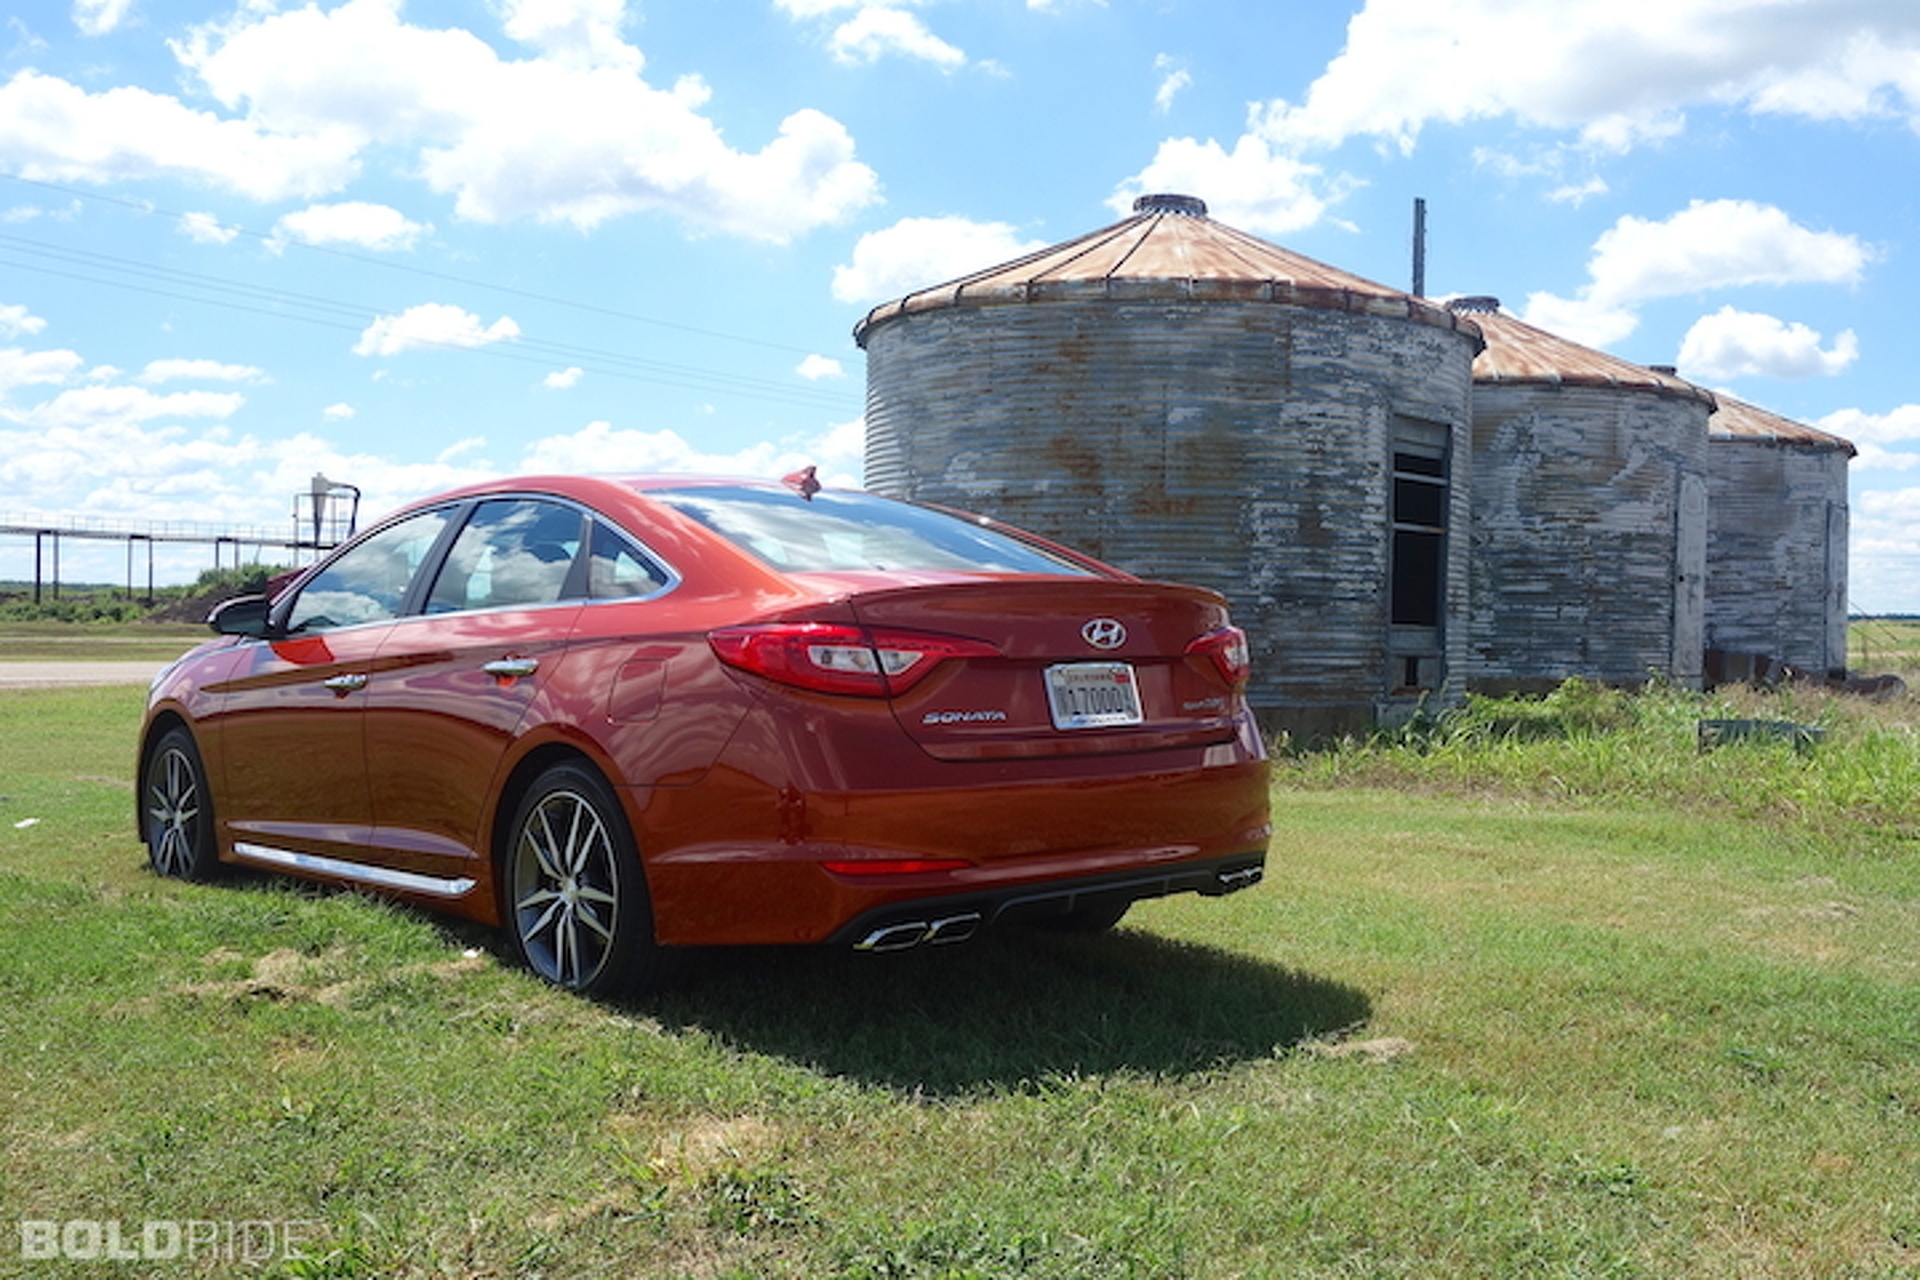 2015 Hyundai Sonata First Drive: The Undercover Fun Sedan